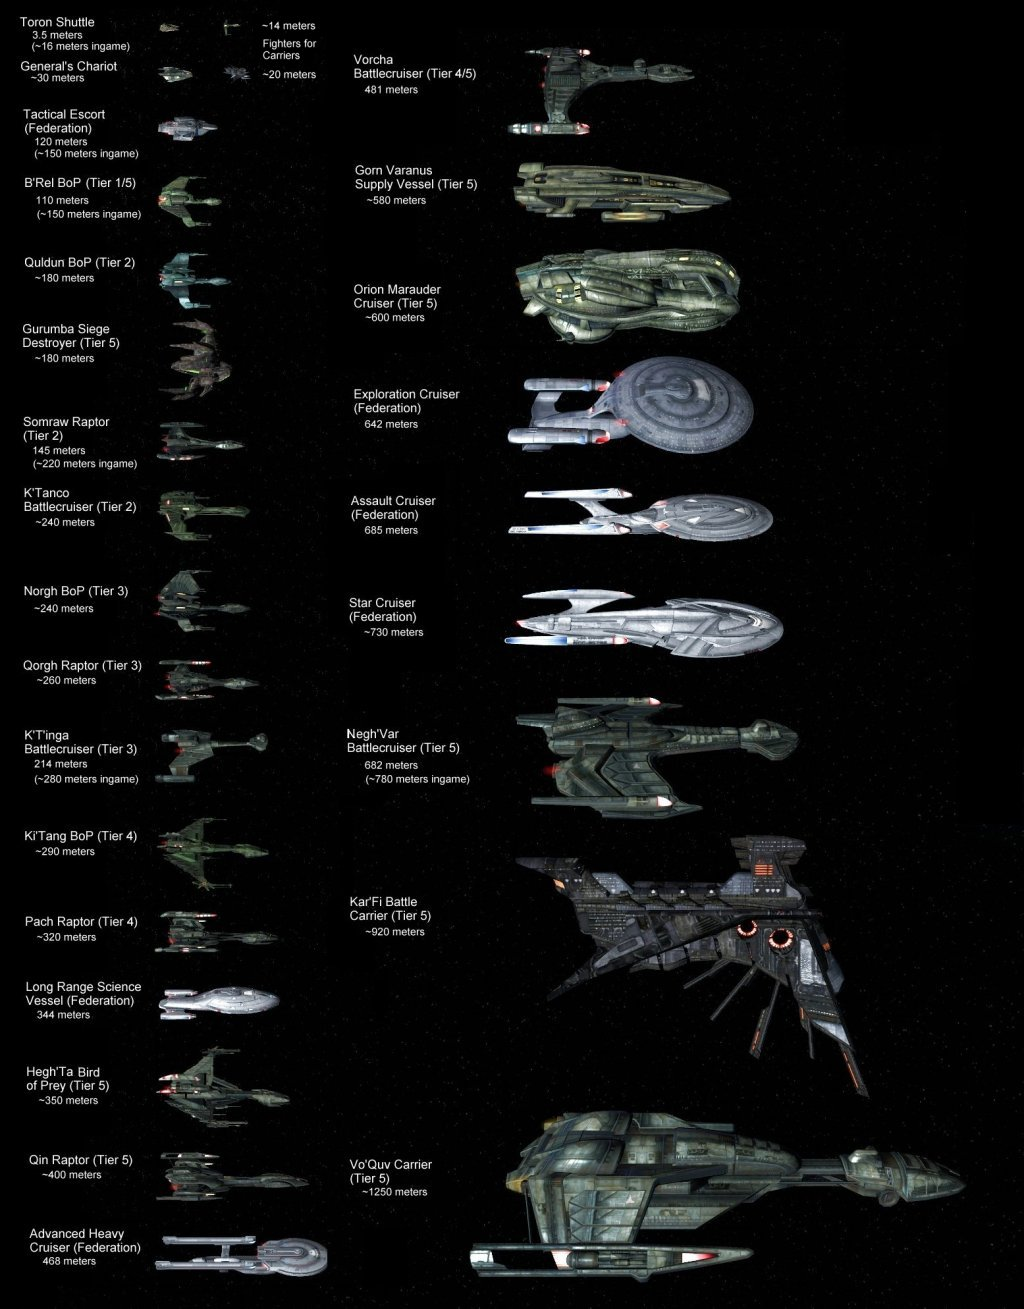 Star Destroyer Size Comparison - Pics about space